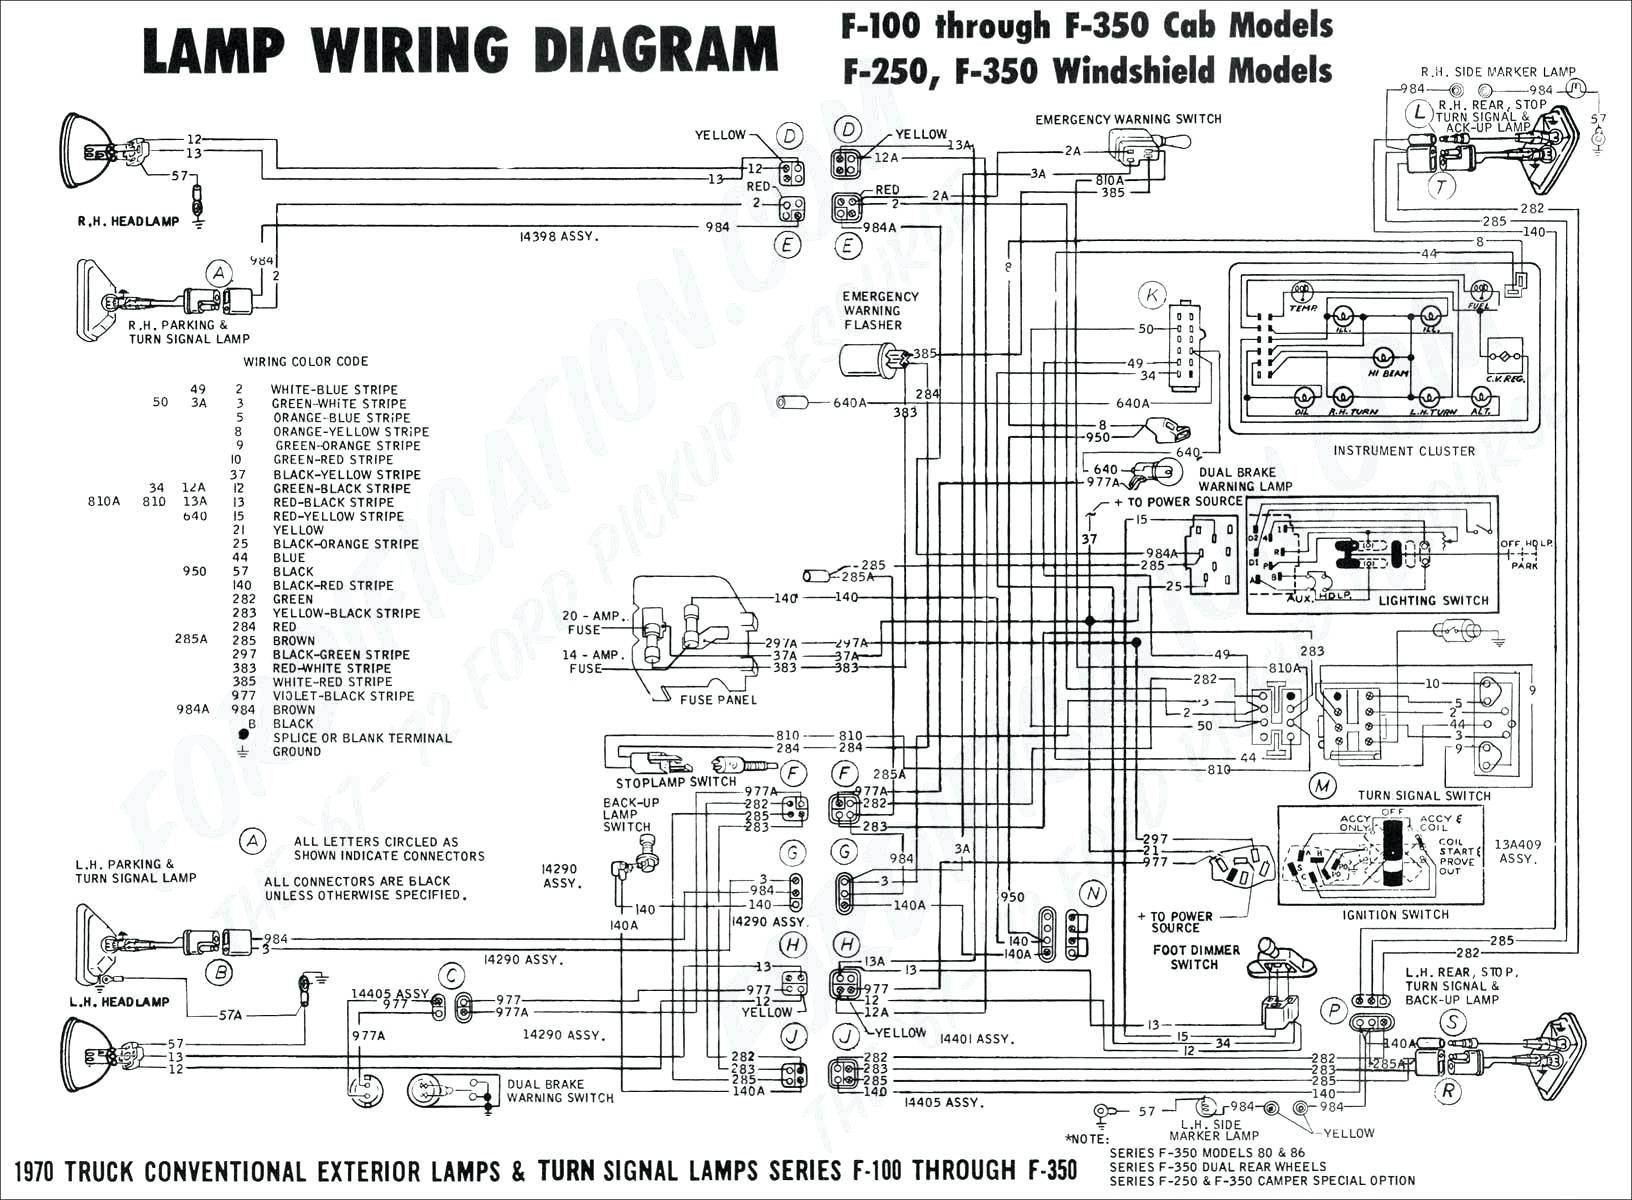 2005 Dodge Ram Stereo Wiring Diagrams Infinity 1998 Dodge Ram 150engine Diagram Diagram Base Website Of 2005 Dodge Ram Stereo Wiring Diagrams Infinity